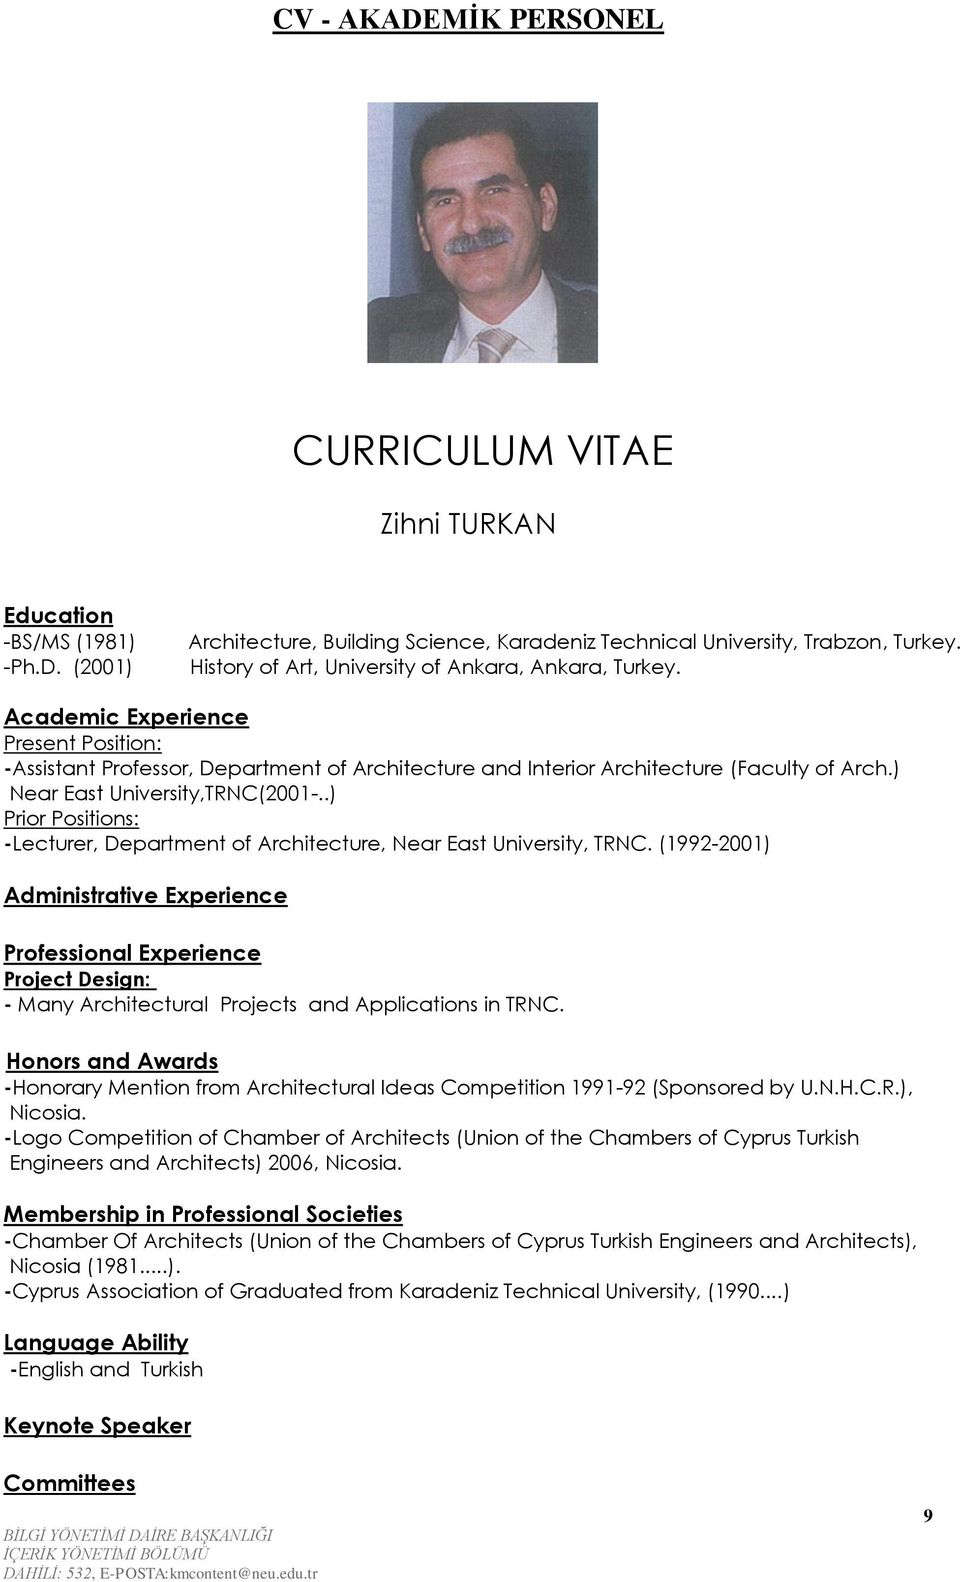 ) Near East University,TRNC(2001-..) Prior Positions: -Lecturer, Department of Architecture, Near East University, TRNC.